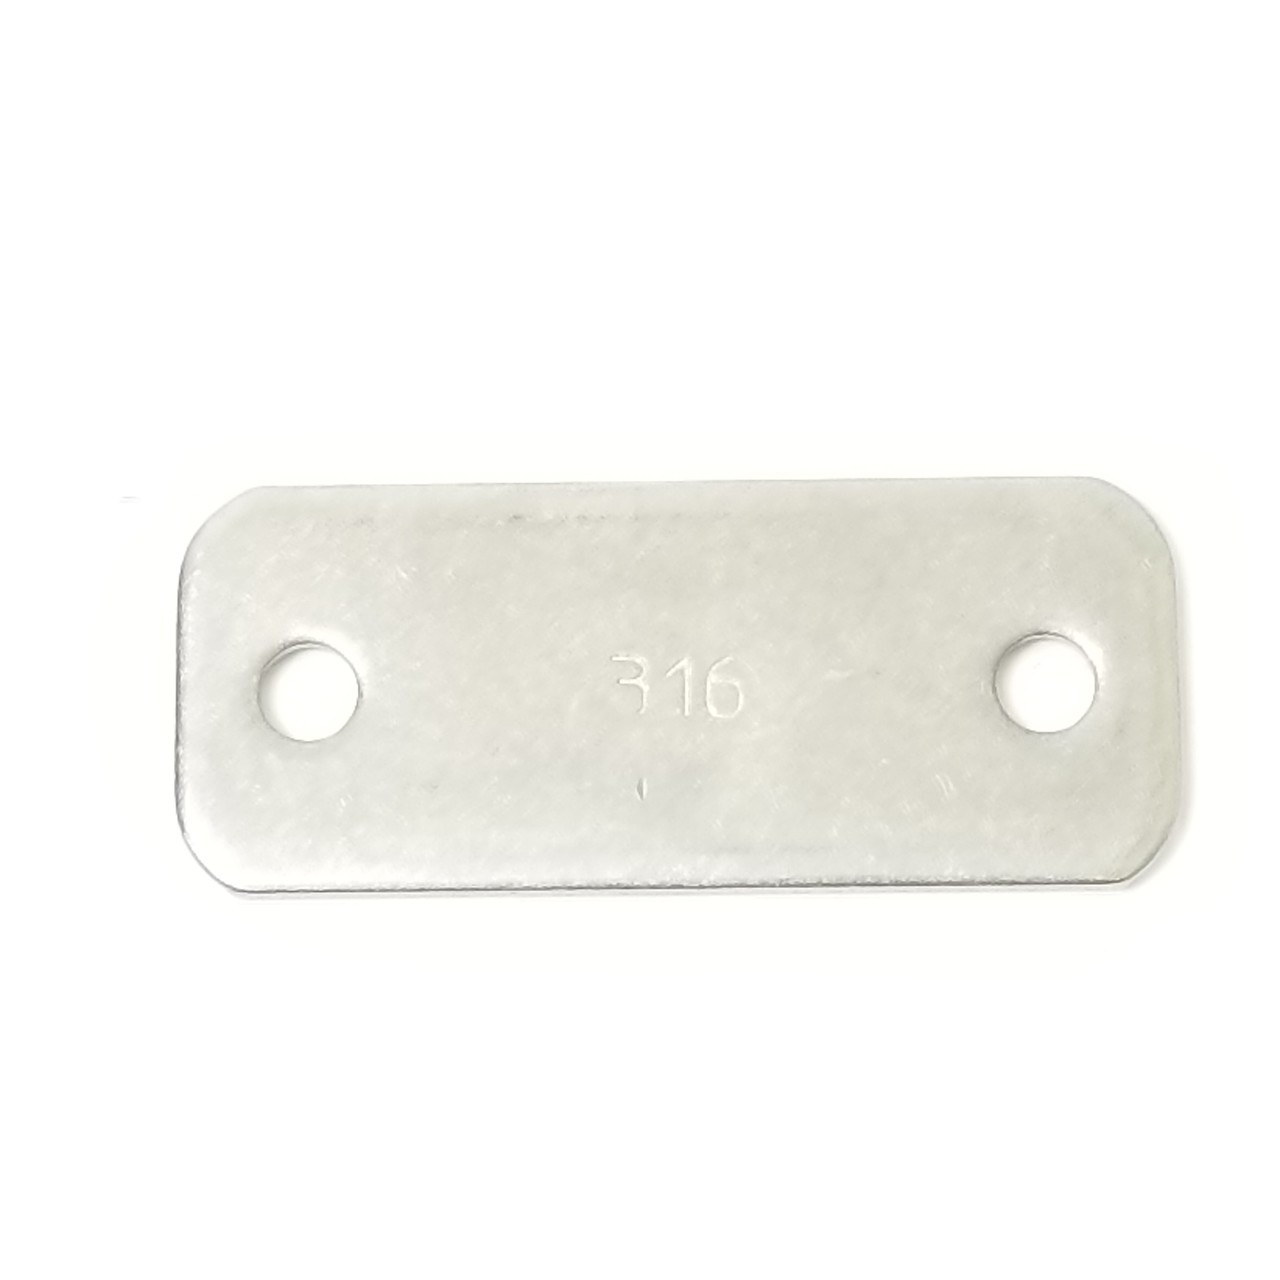 TP4316 Top plate